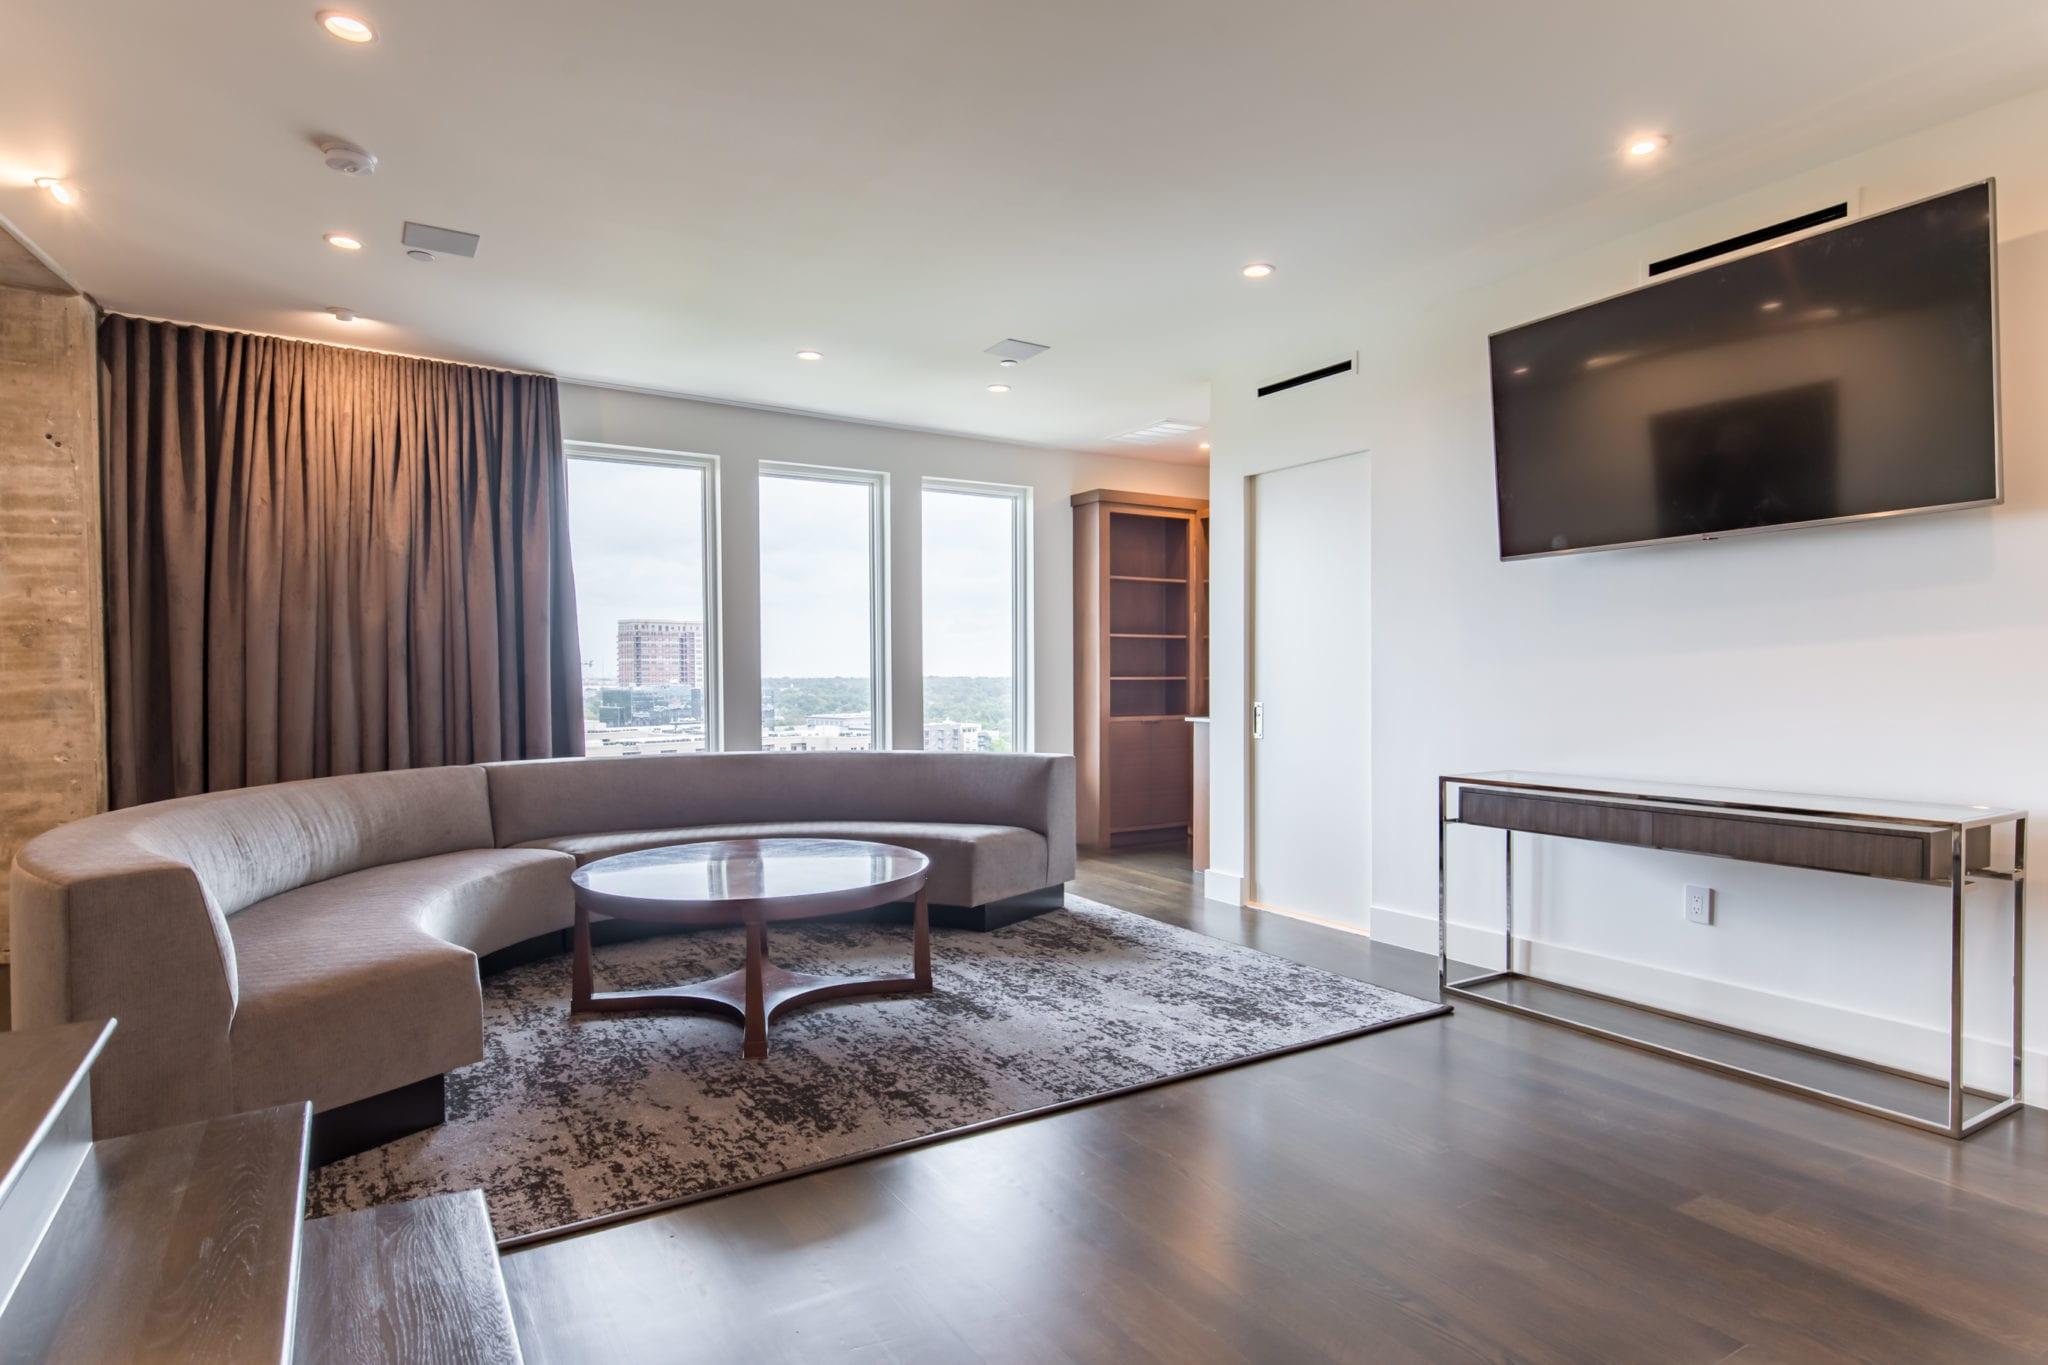 Lower Level After Remodel Bedroom Converted into entertainment area